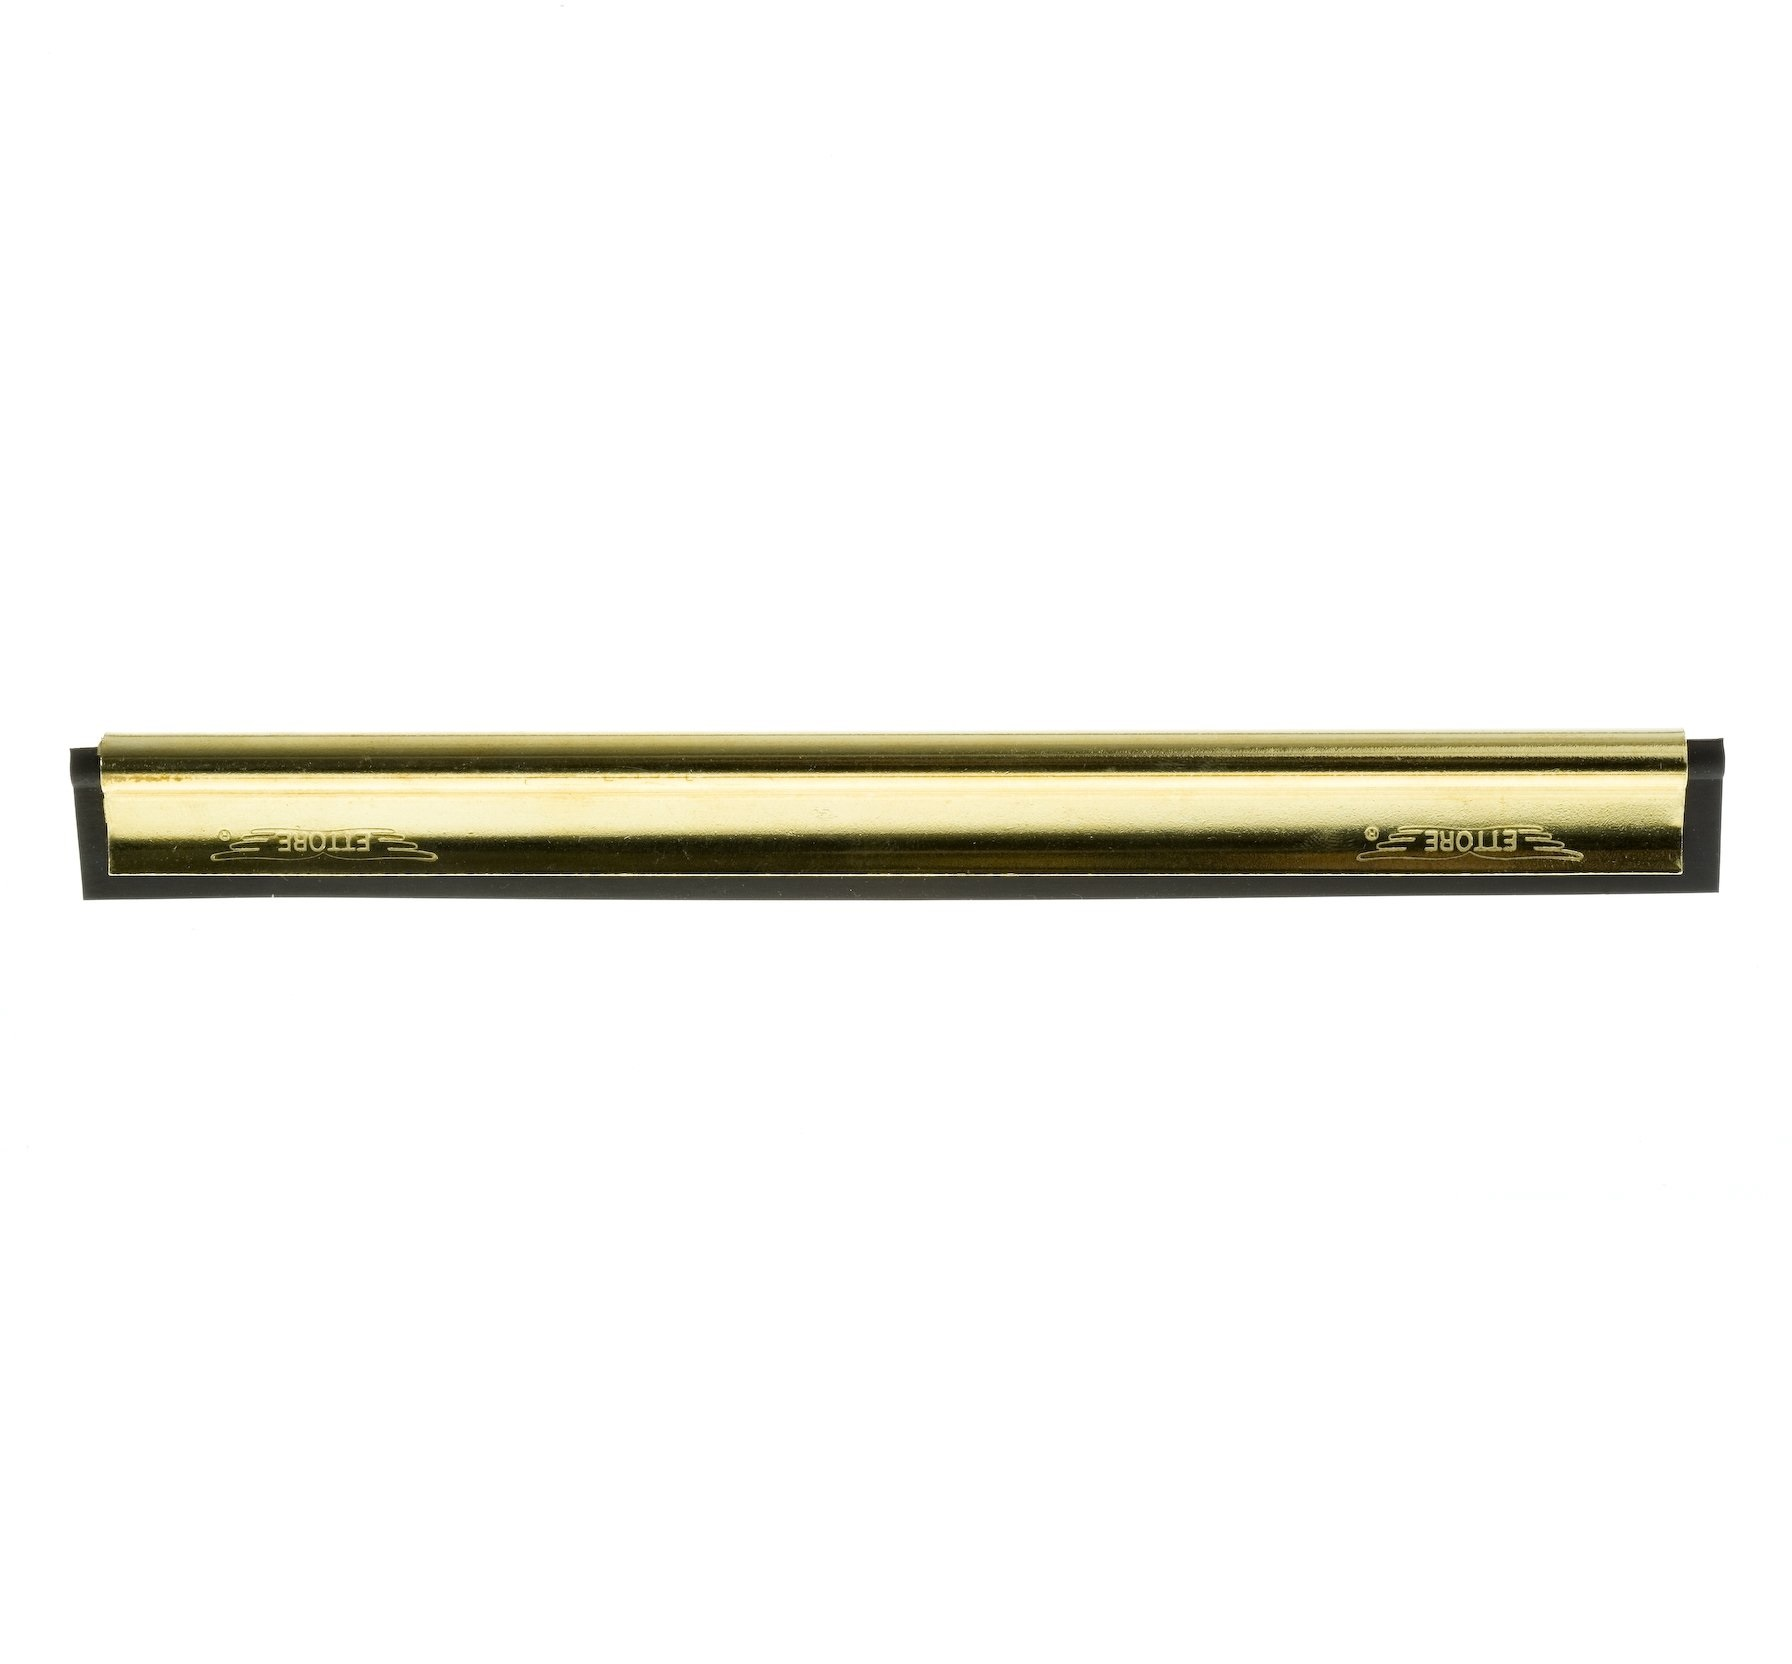 Ettore Master Brass Channel & Rubber 14-inch